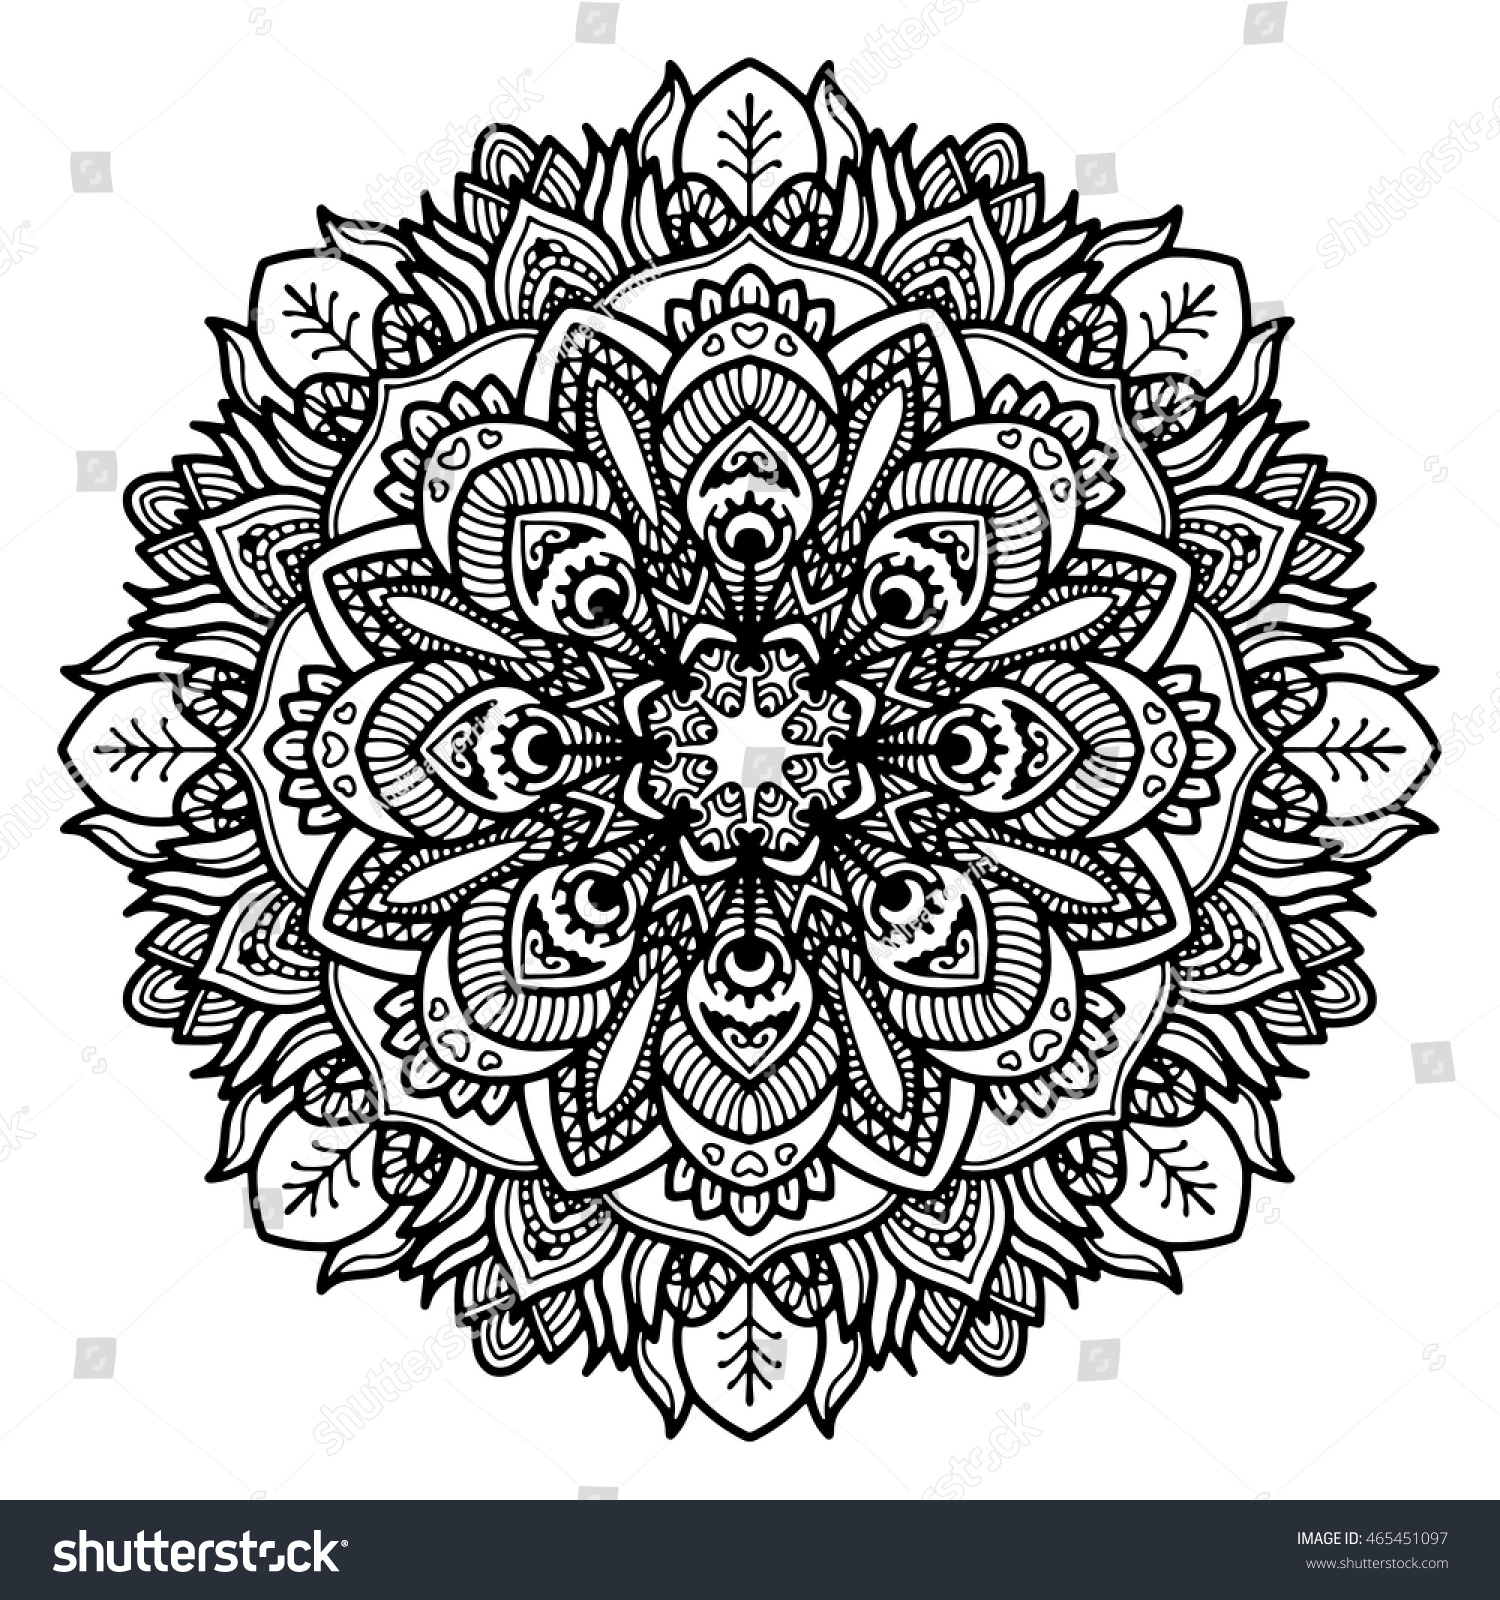 Abstract Circle Coloring Pages : Vector round abstract circle mandala style stock